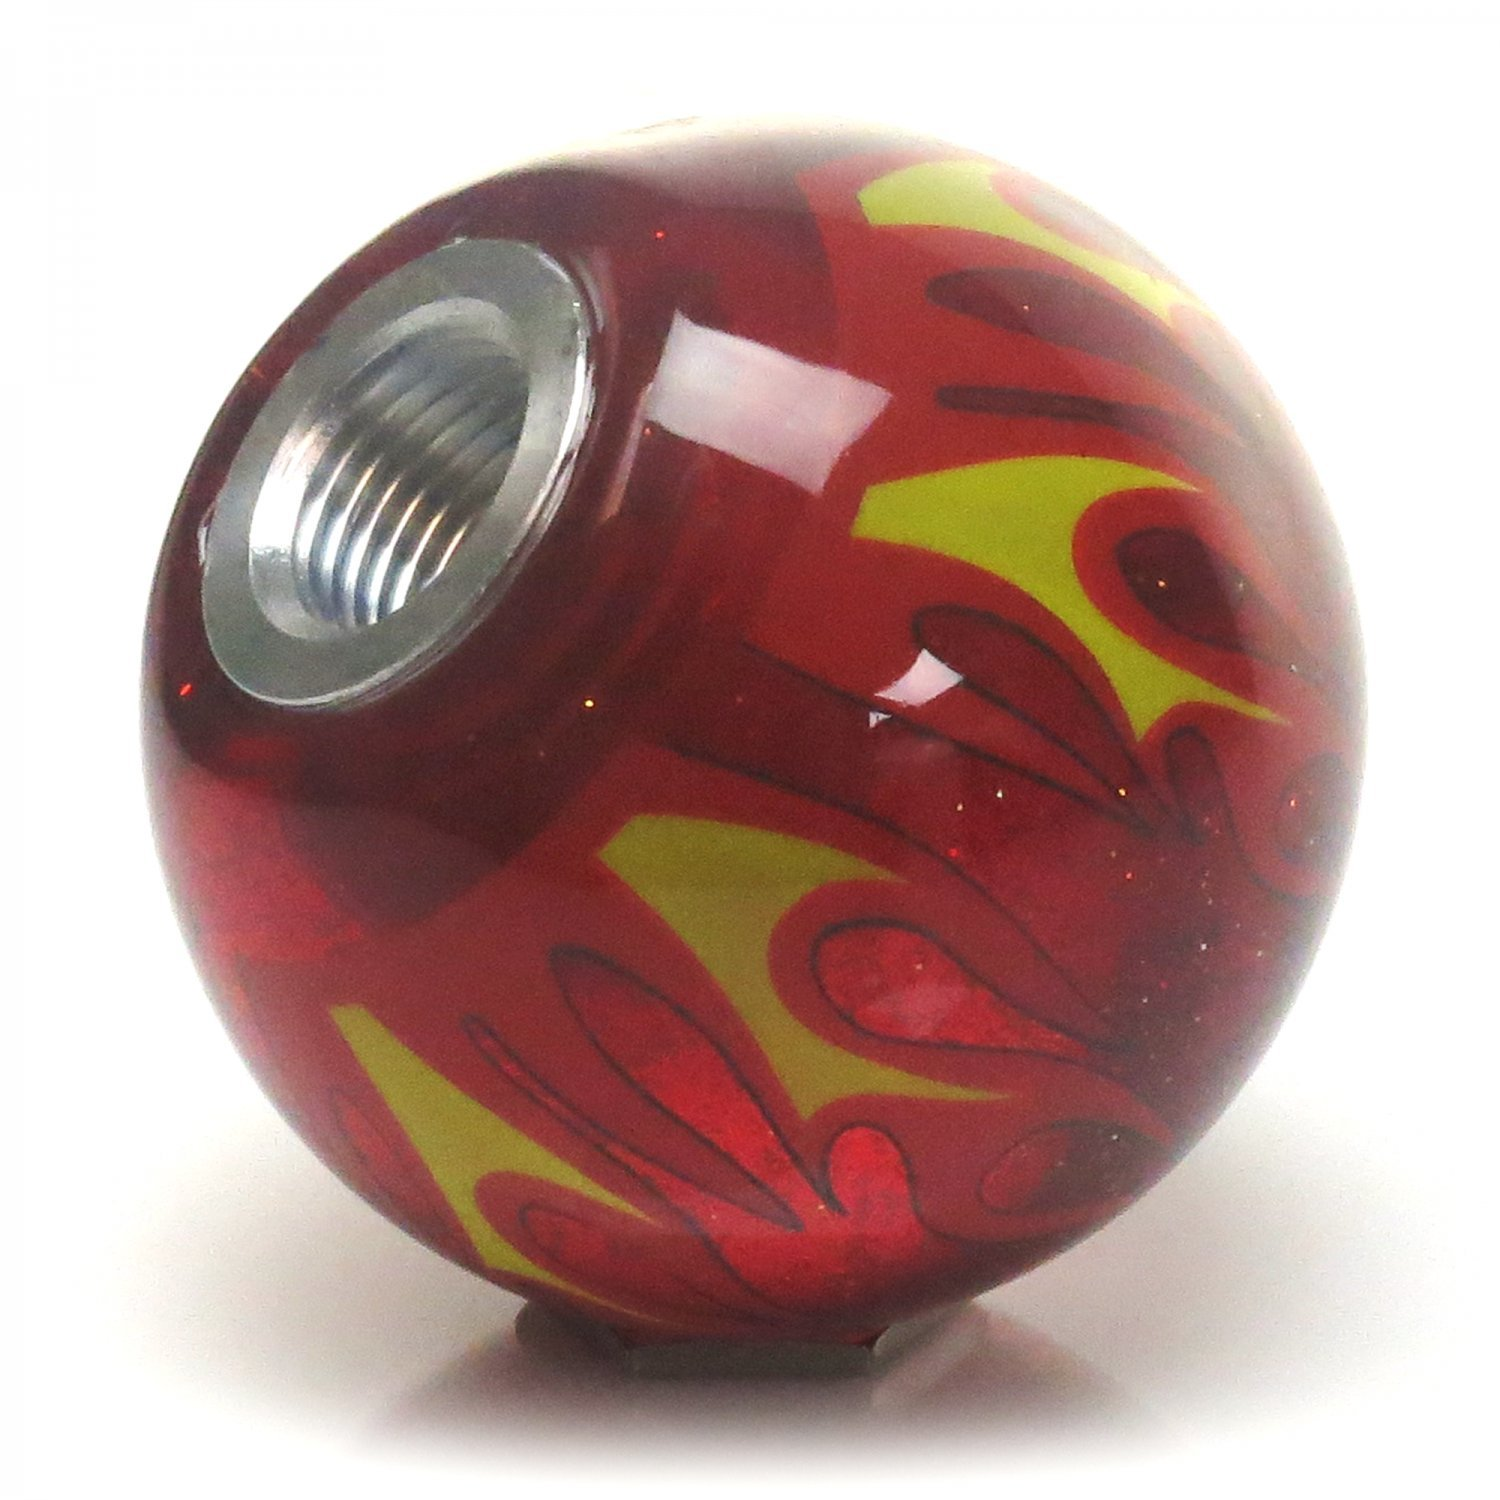 Yellow Shift Pattern 9n American Shifter 243183 Red Flame Metal Flake Shift Knob with M16 x 1.5 Insert